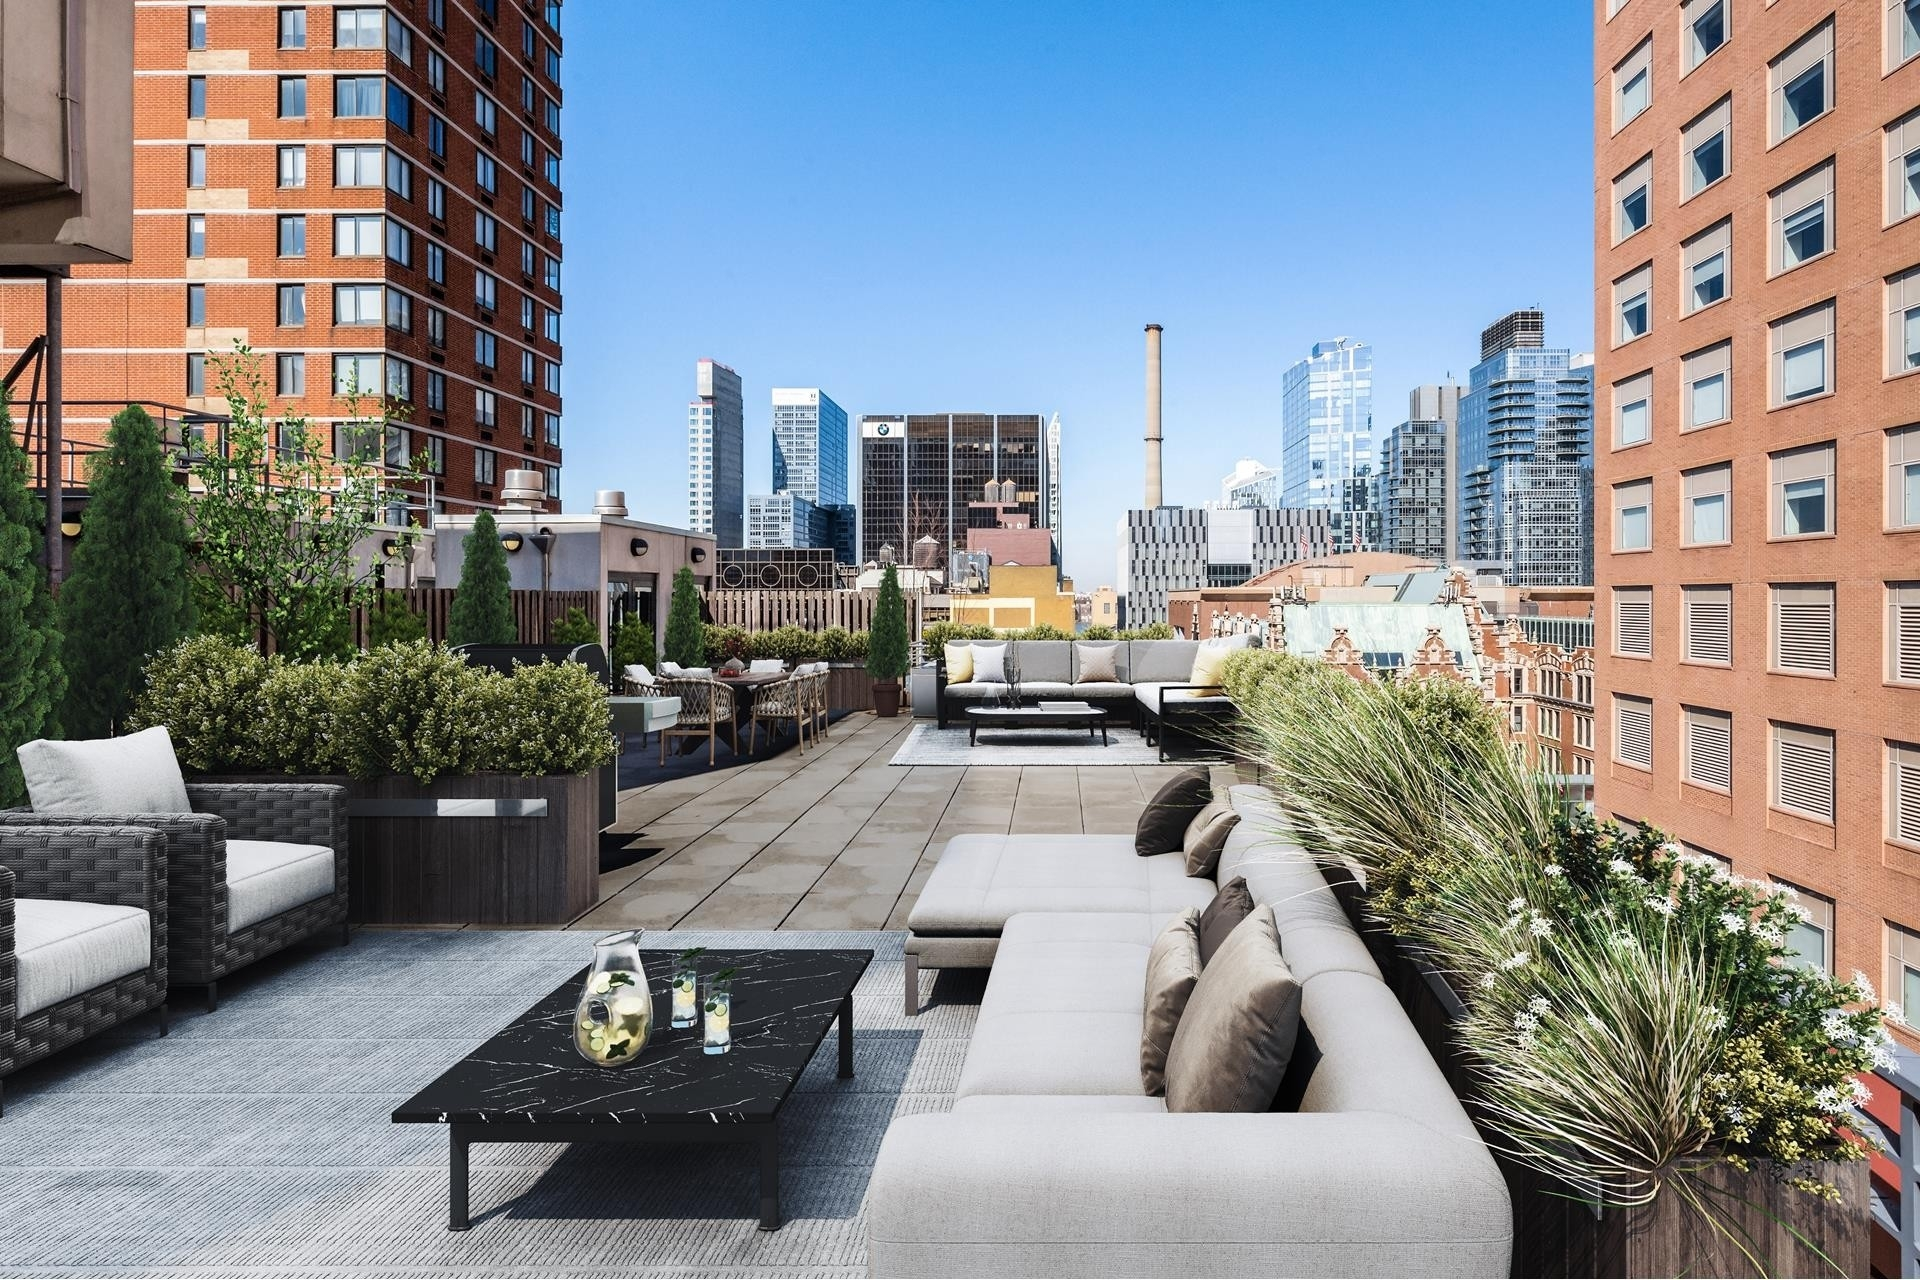 Property at Hudson Hill Condominium, 462 West 58th St, PHC New York